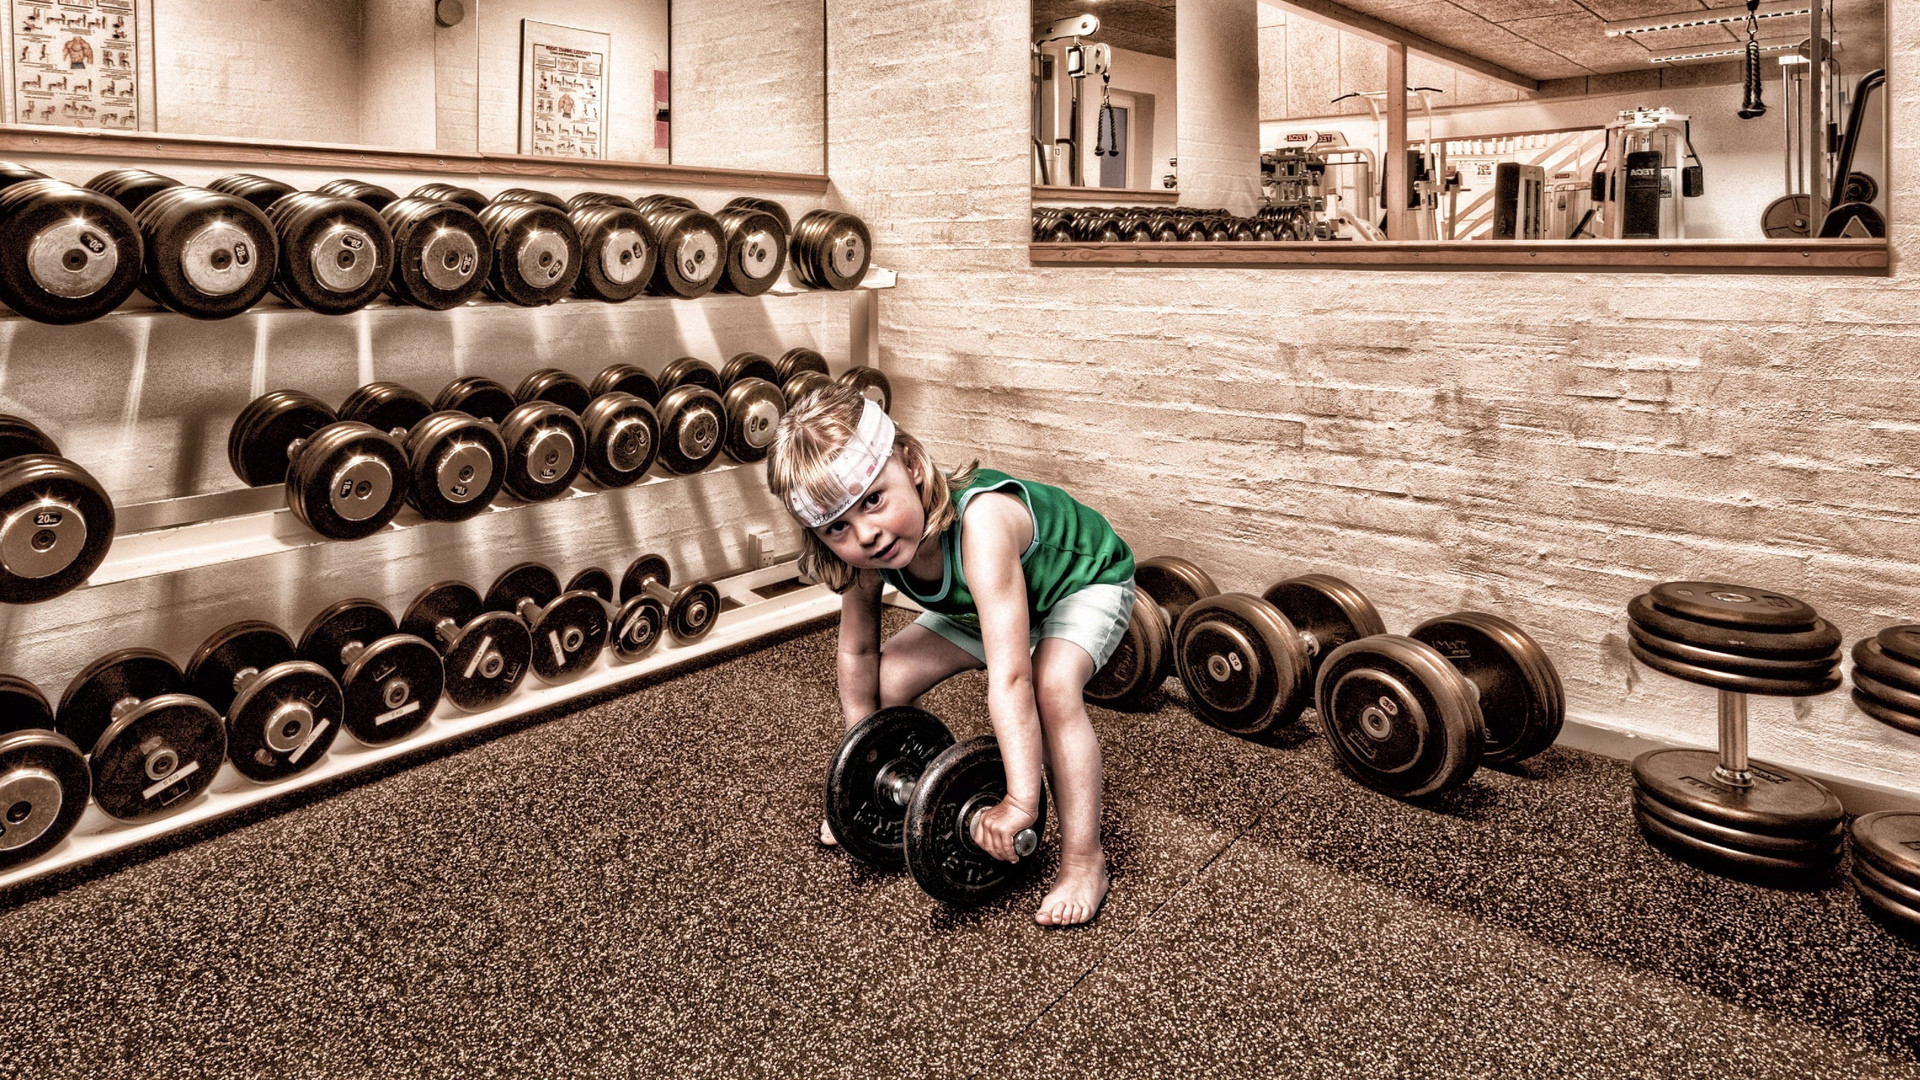 Kid with dumbbells in the gym: